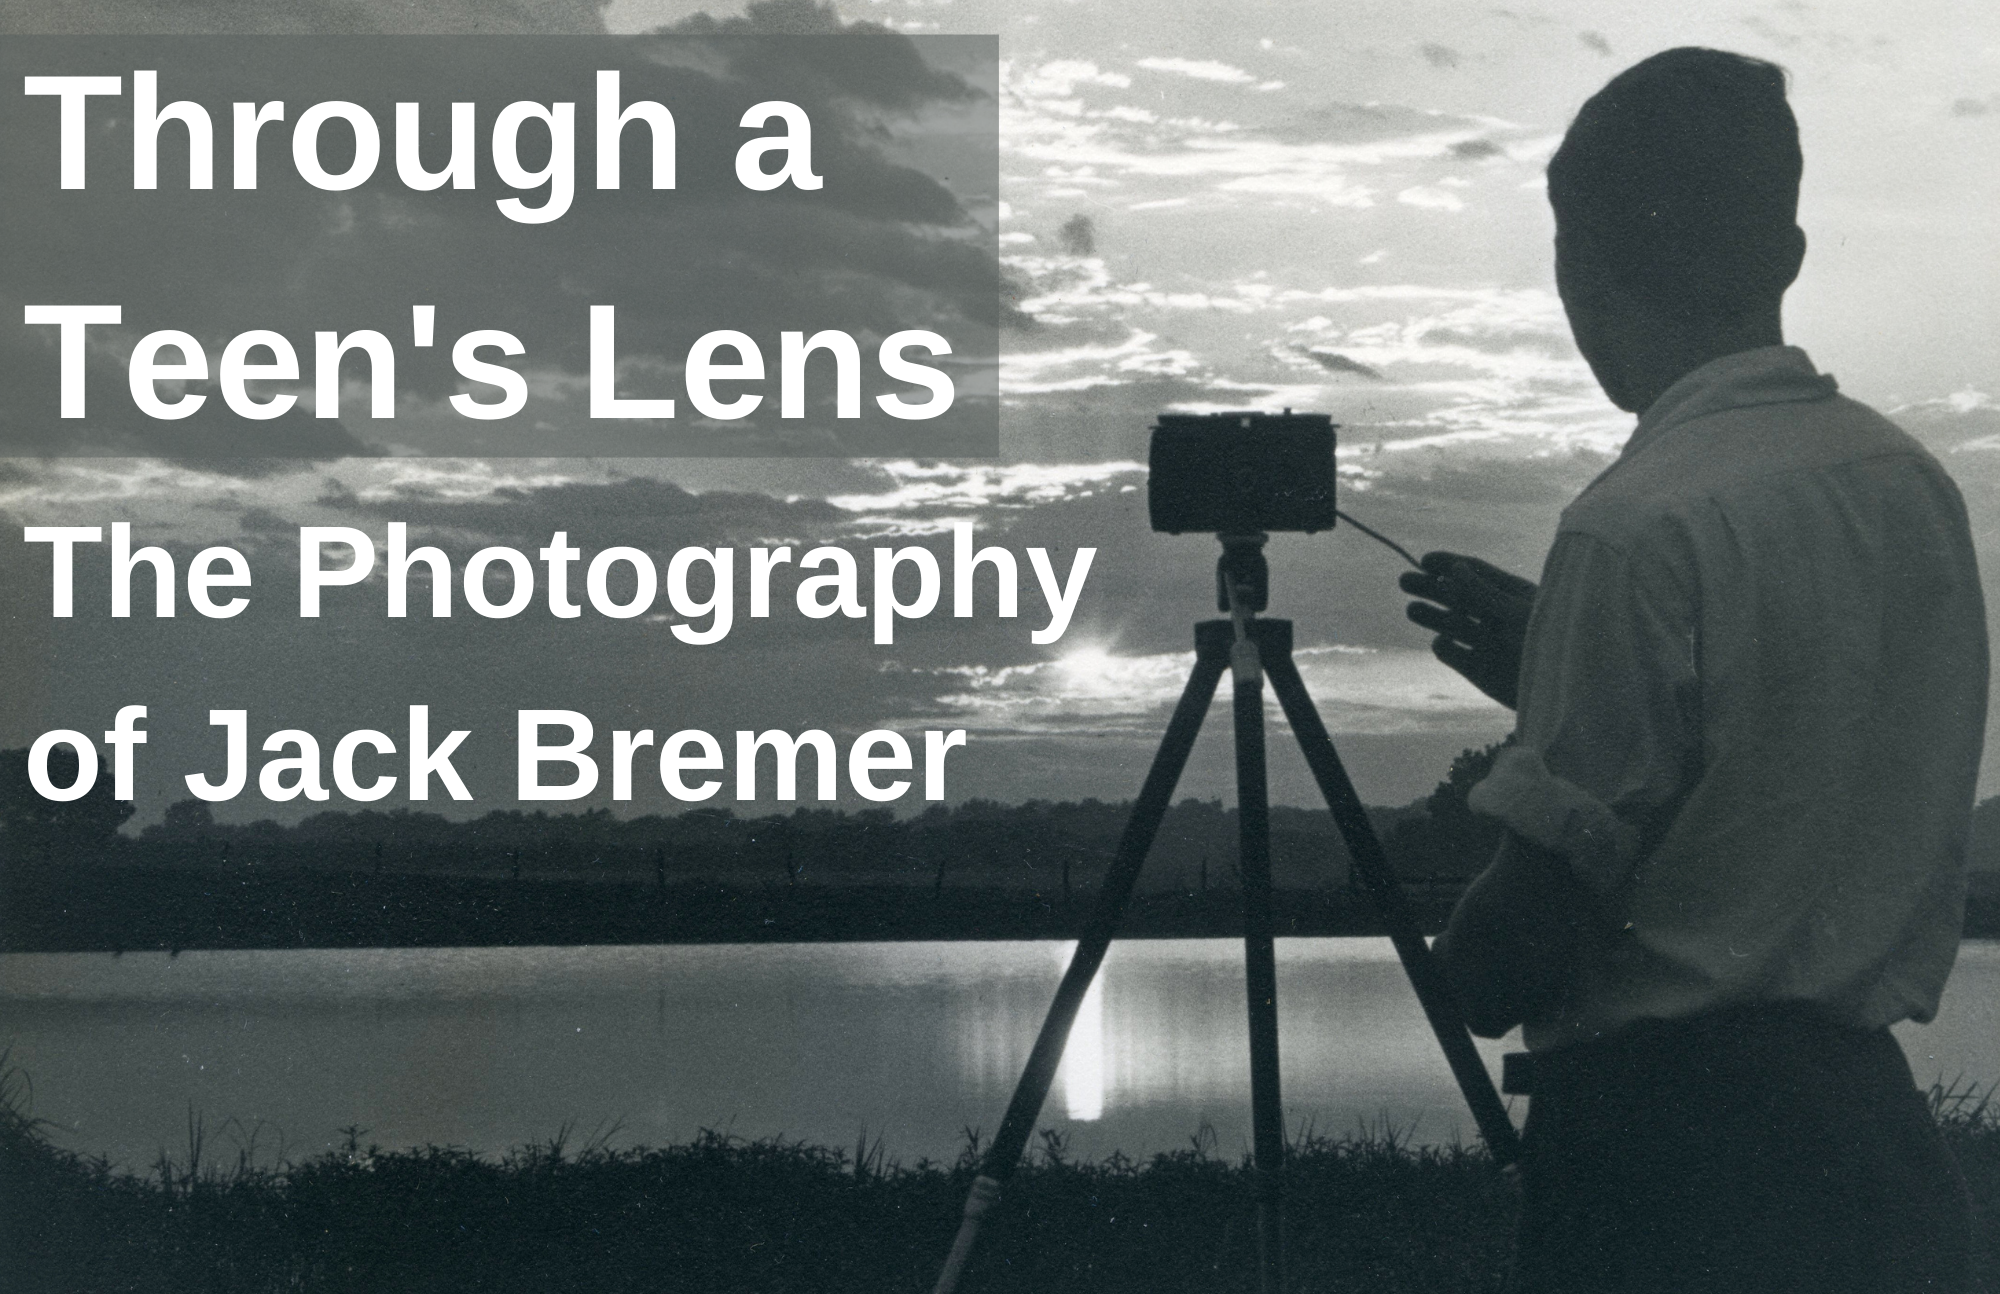 A black-and-white image shows a teen boy standing with a camera on a tripod, photographing a sun setting over a body of water. The exhibit title Through a Teen's Lens: The Photography of Jack Bremer appears in the upper right-hand corner.